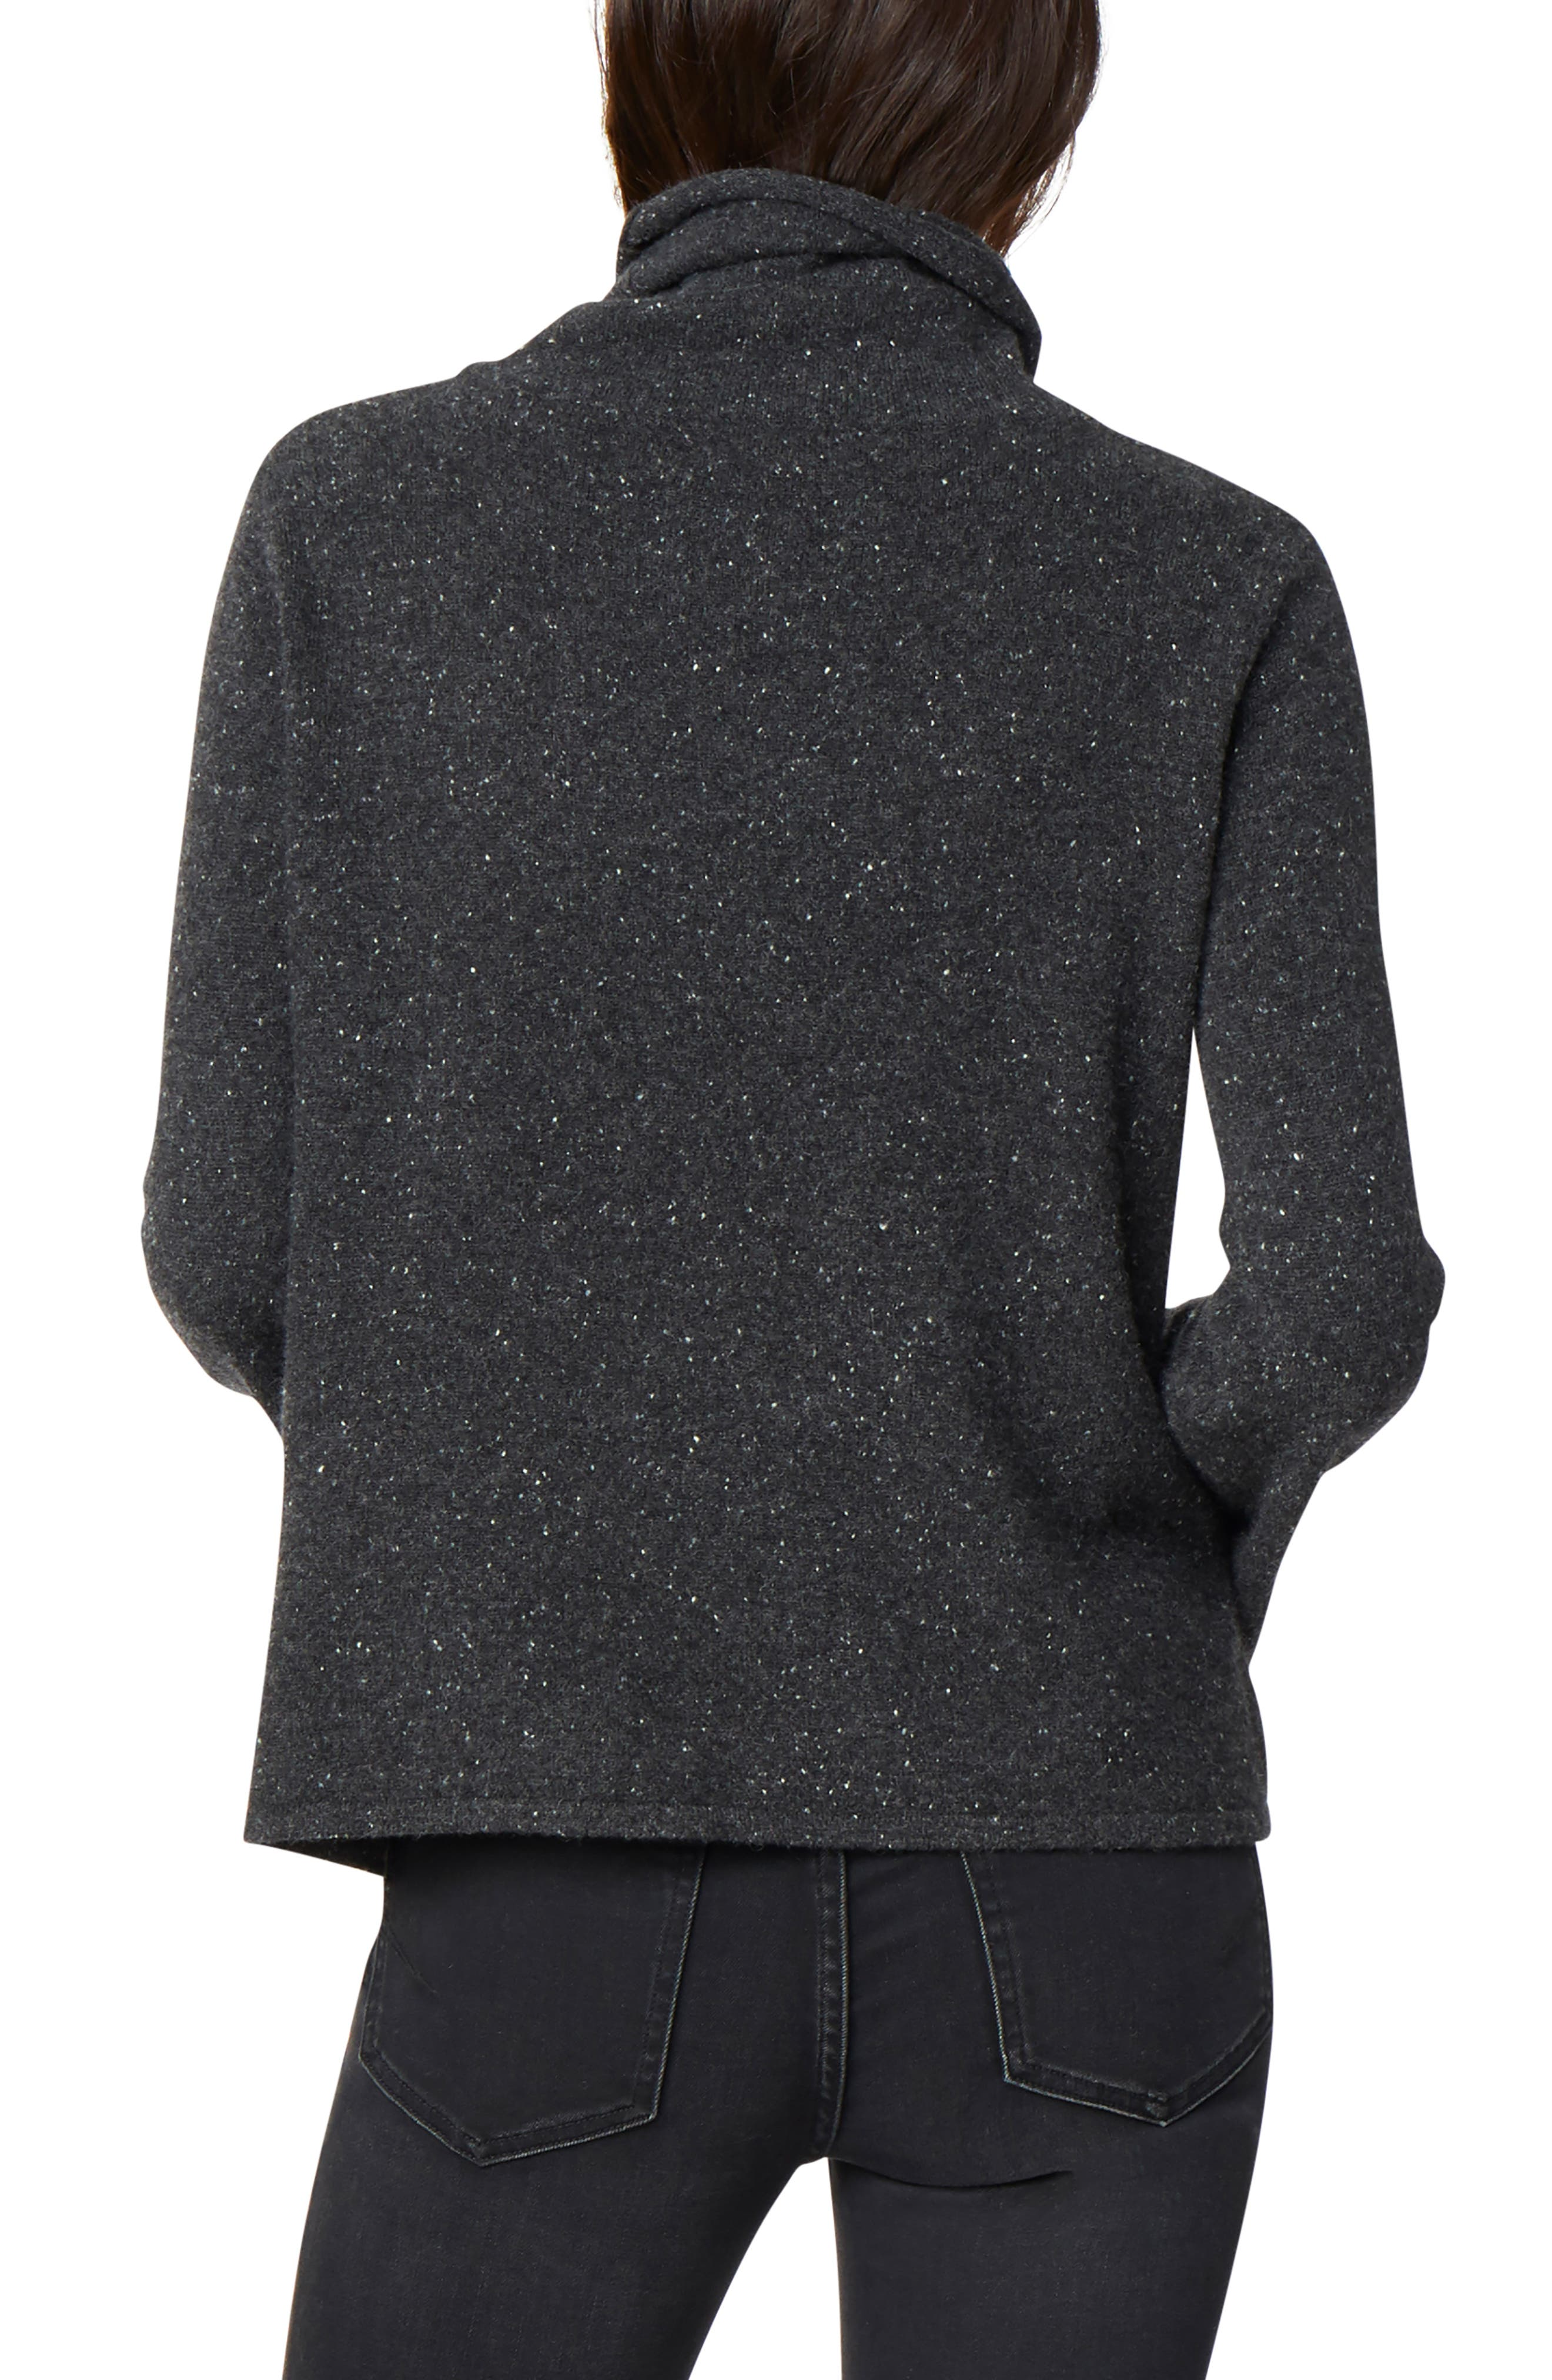 HABITUAL, Adalyn Oversize Bell Sleeve Cashmere Sweater, Alternate thumbnail 2, color, 001